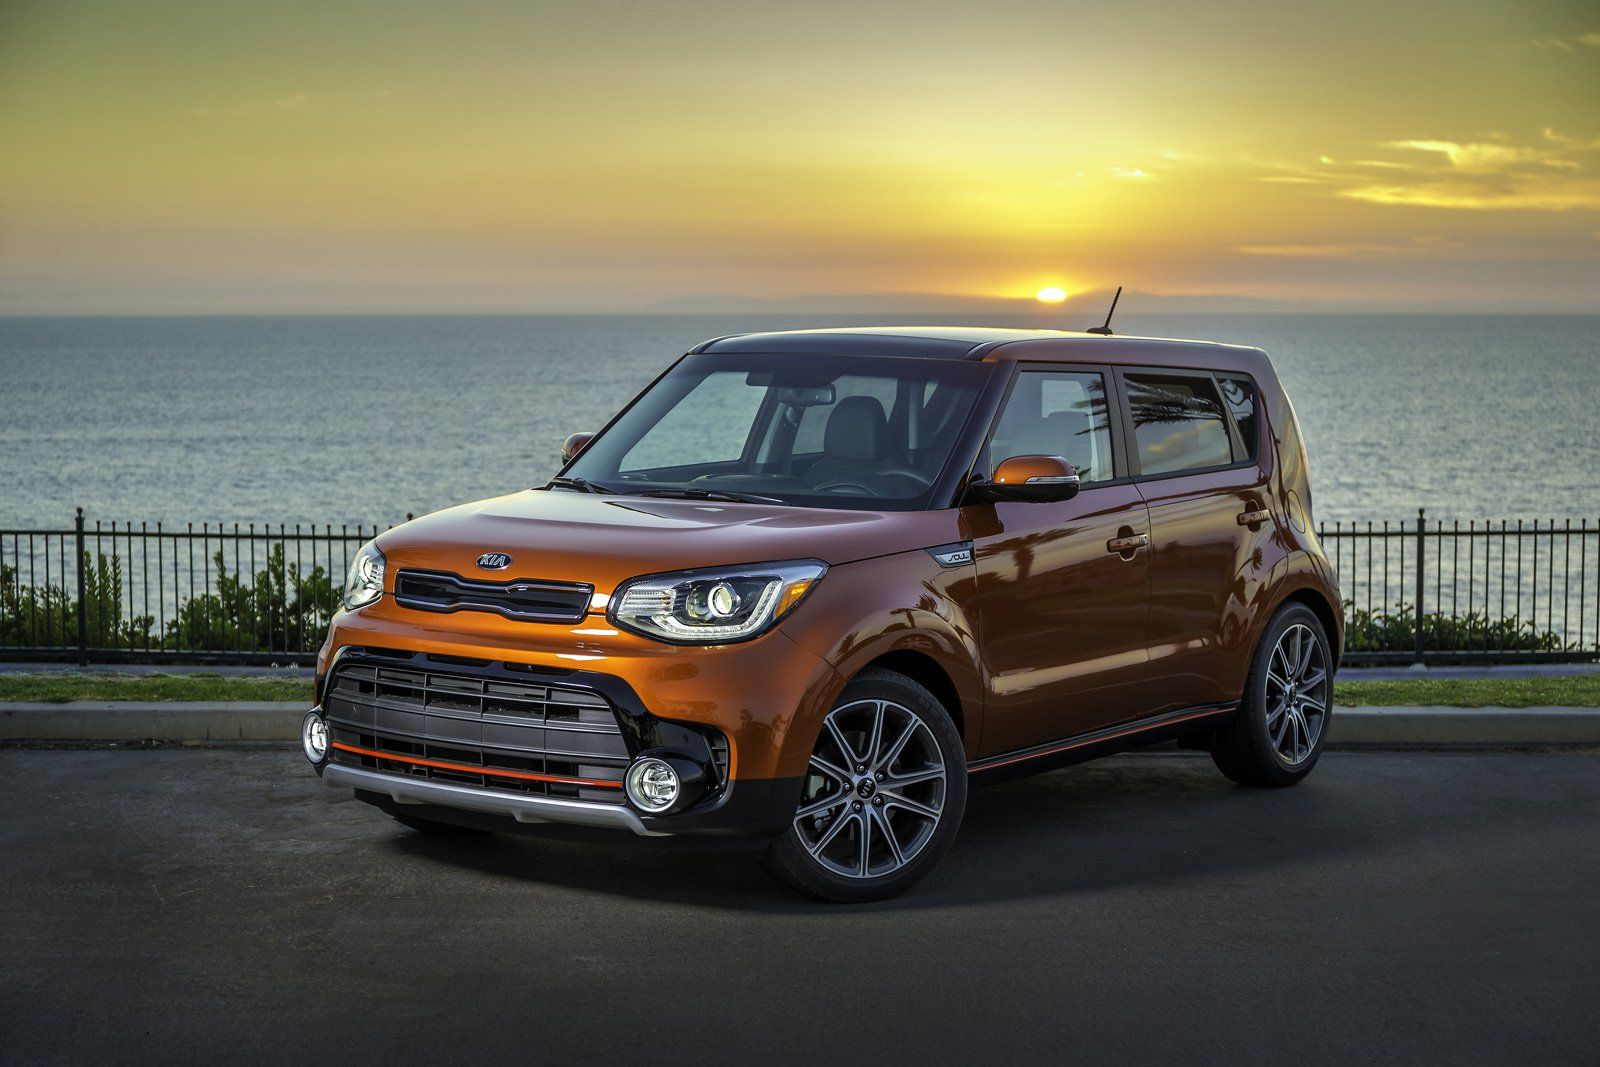 New Turbocharged 2017 Kia Soul Kia Soul Kia Soul Price Kia Motors